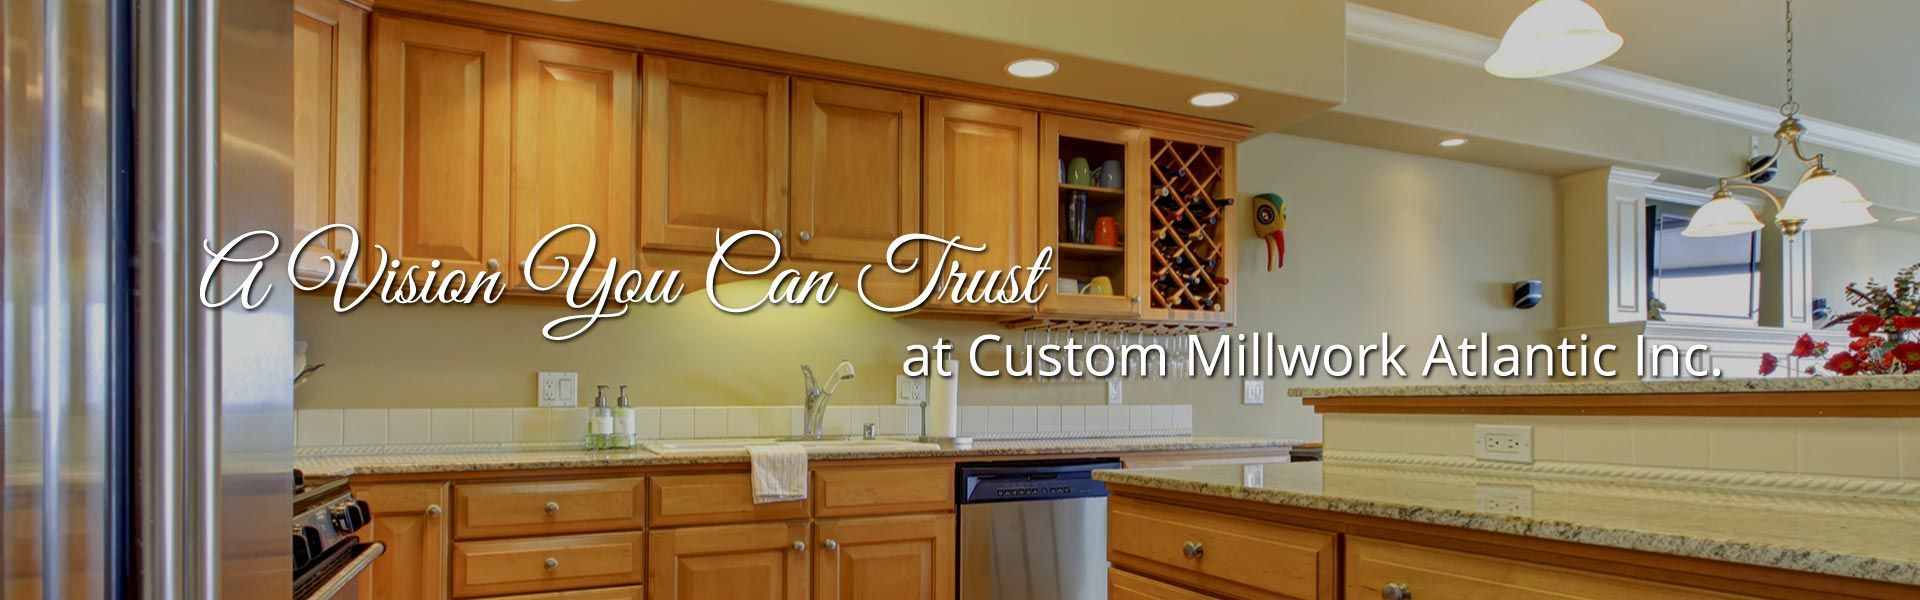 A Vision You Can Trust at Custom Millwork Atlantic Inc. | custom kitchen cabinets